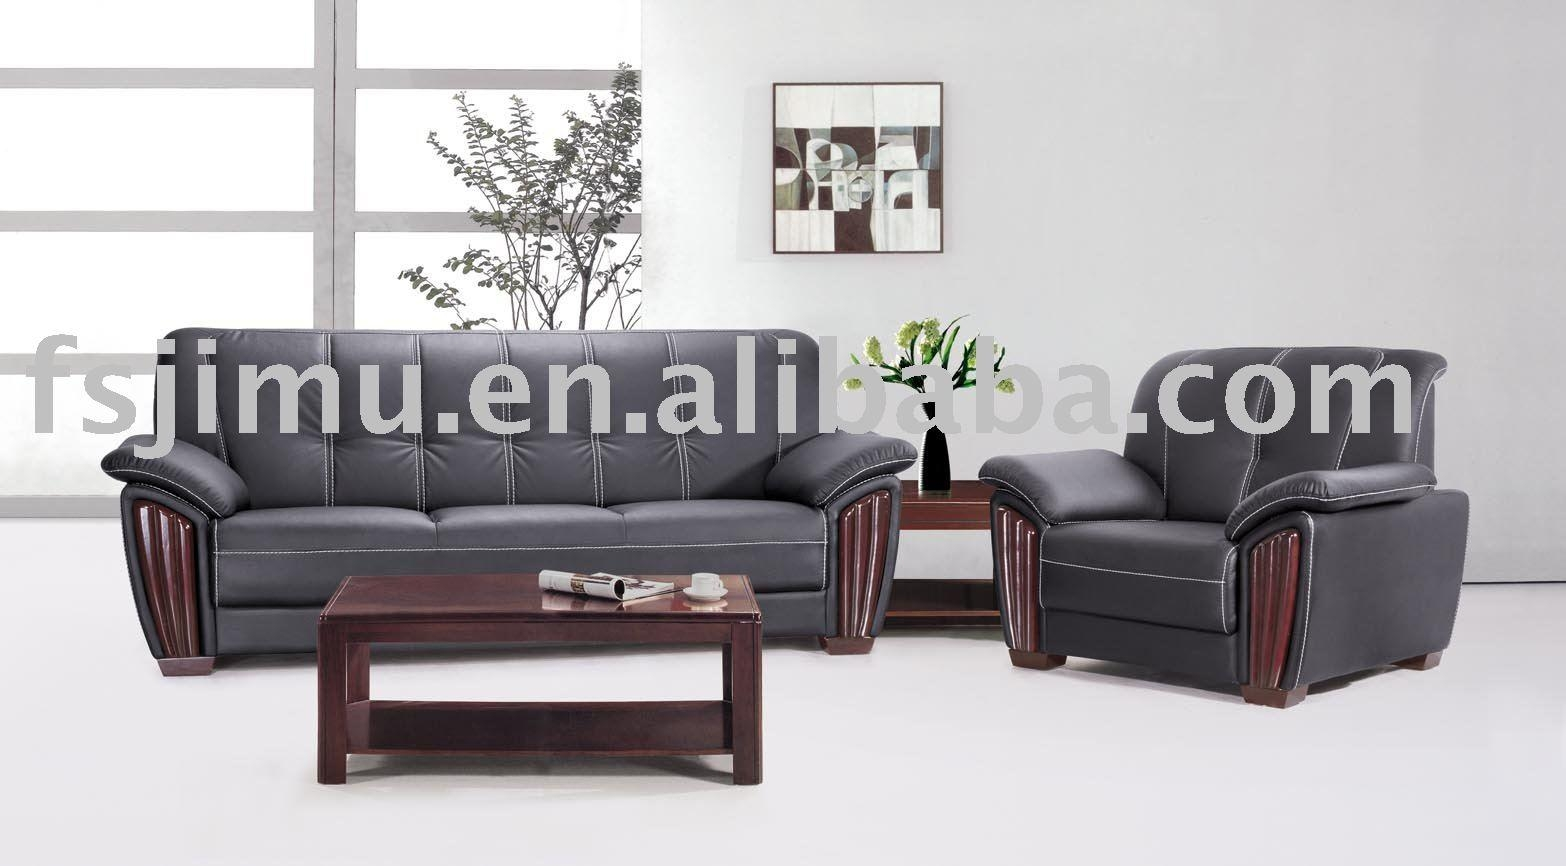 High End Office Sofa, High End Office Sofa Suppliers And Intended For High End Sofa (View 18 of 20)